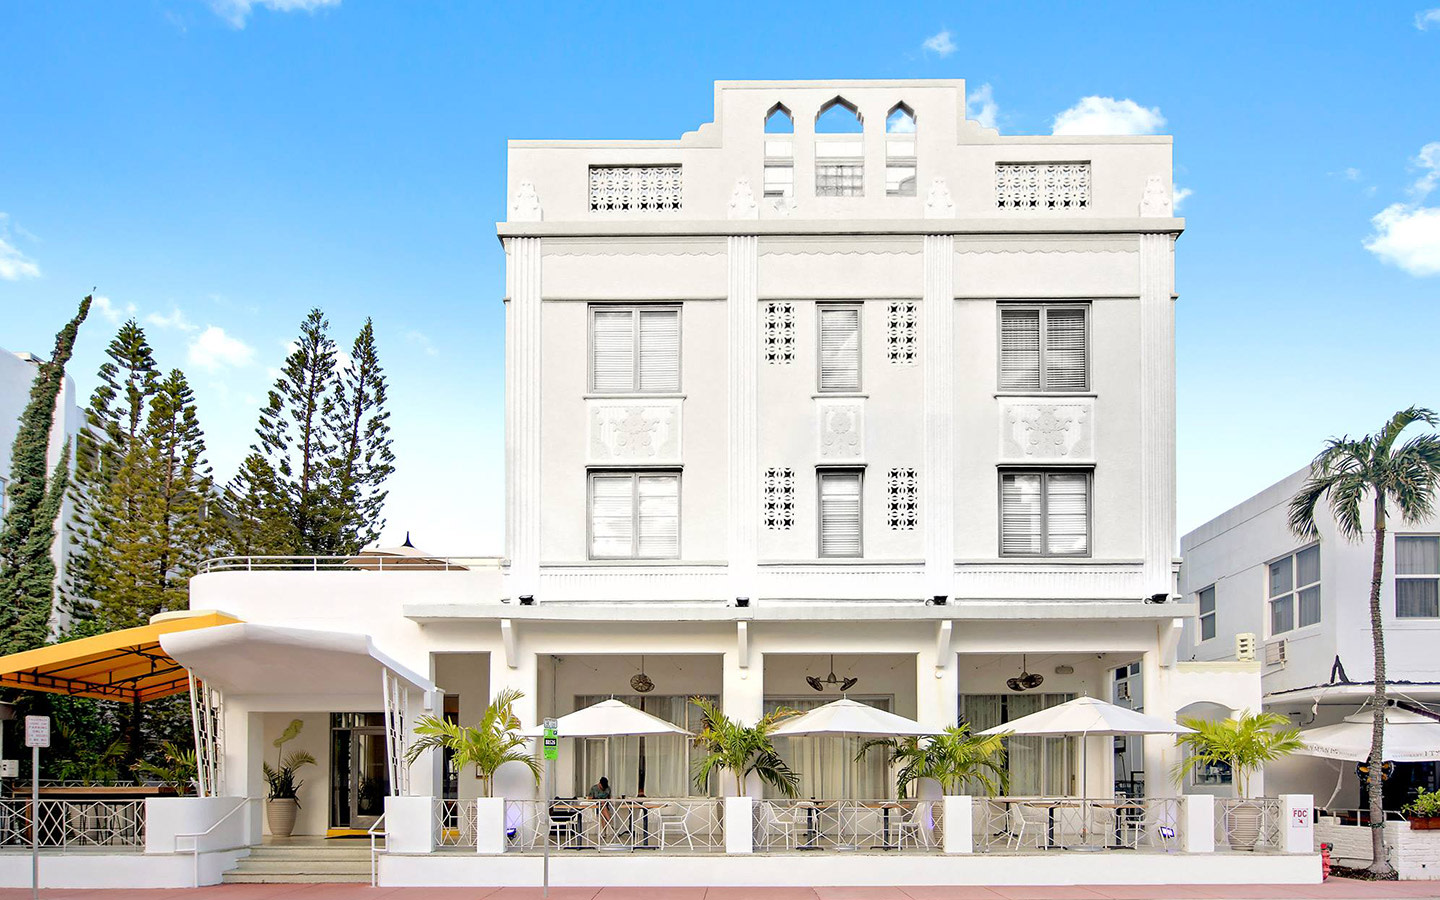 The Stiles Hotel, South Beach